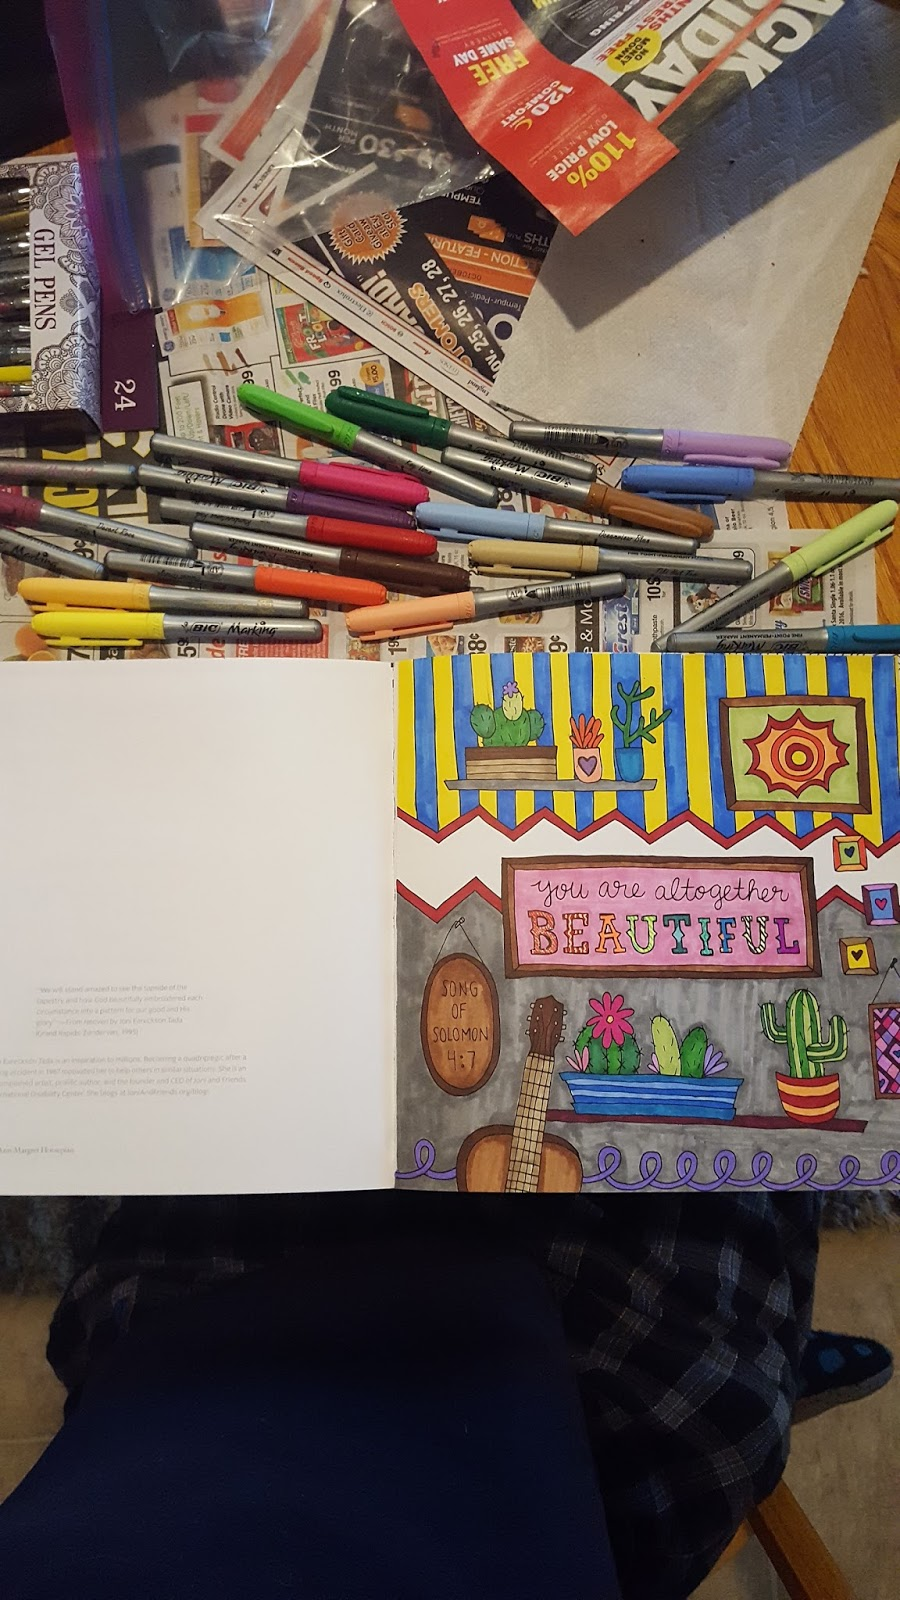 New colour me beautiful book 2016 - There Are 45 Individual Illustrations To Color And Even More Is A Spotify Playlist Called Everything Beautiful Which You Can Play While You Color Or Even